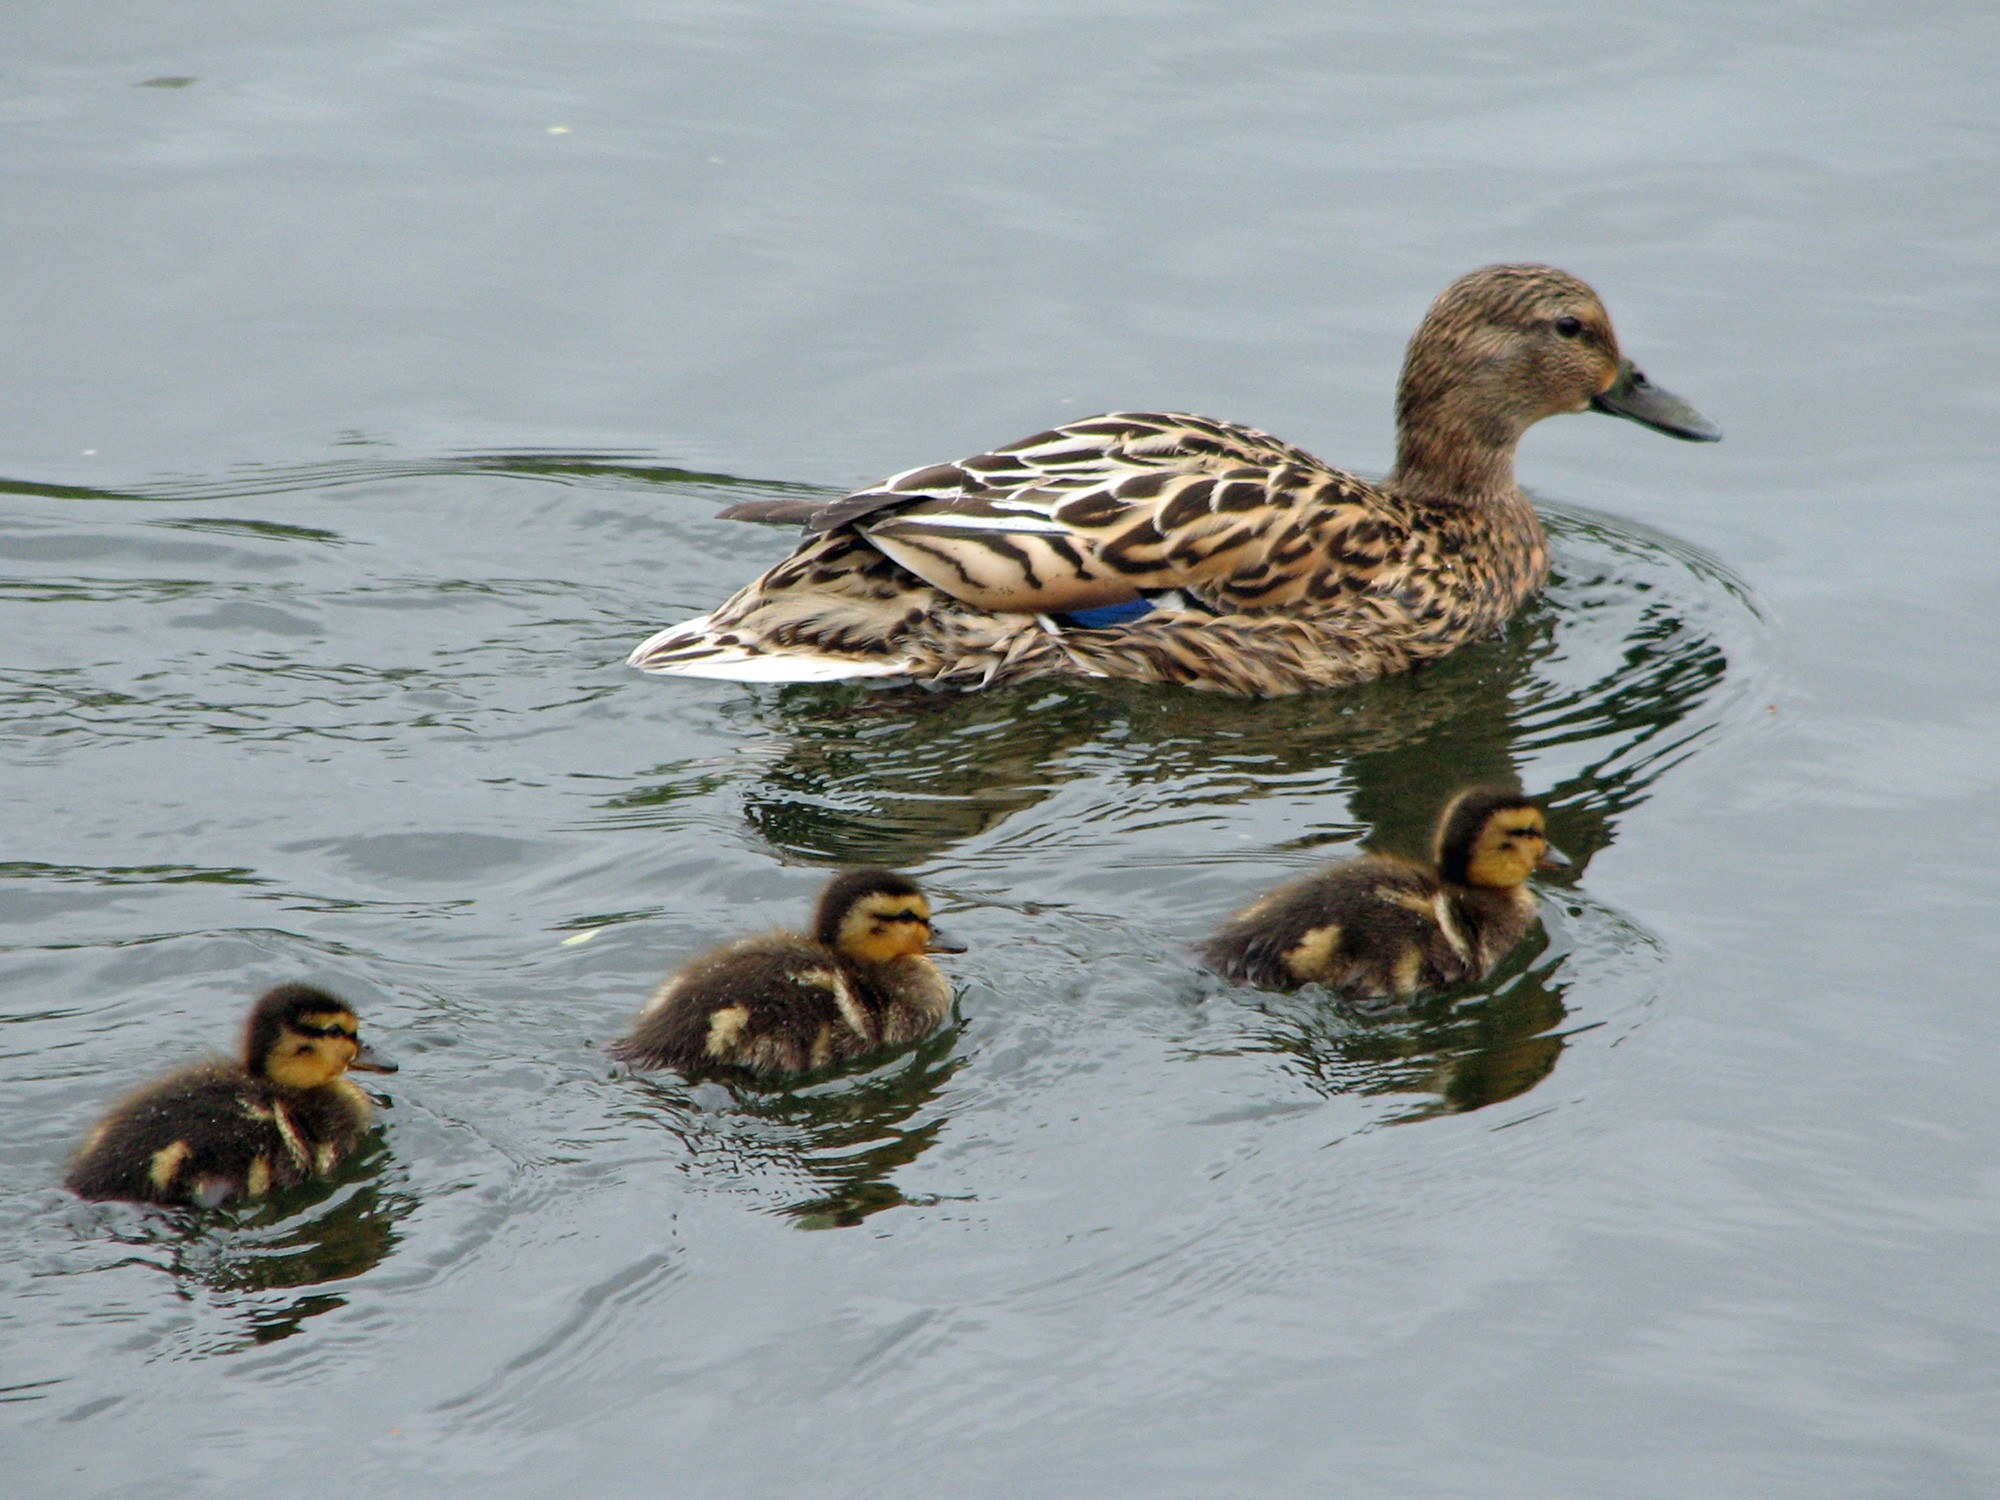 Adult Duck and Baby Ducks in Water